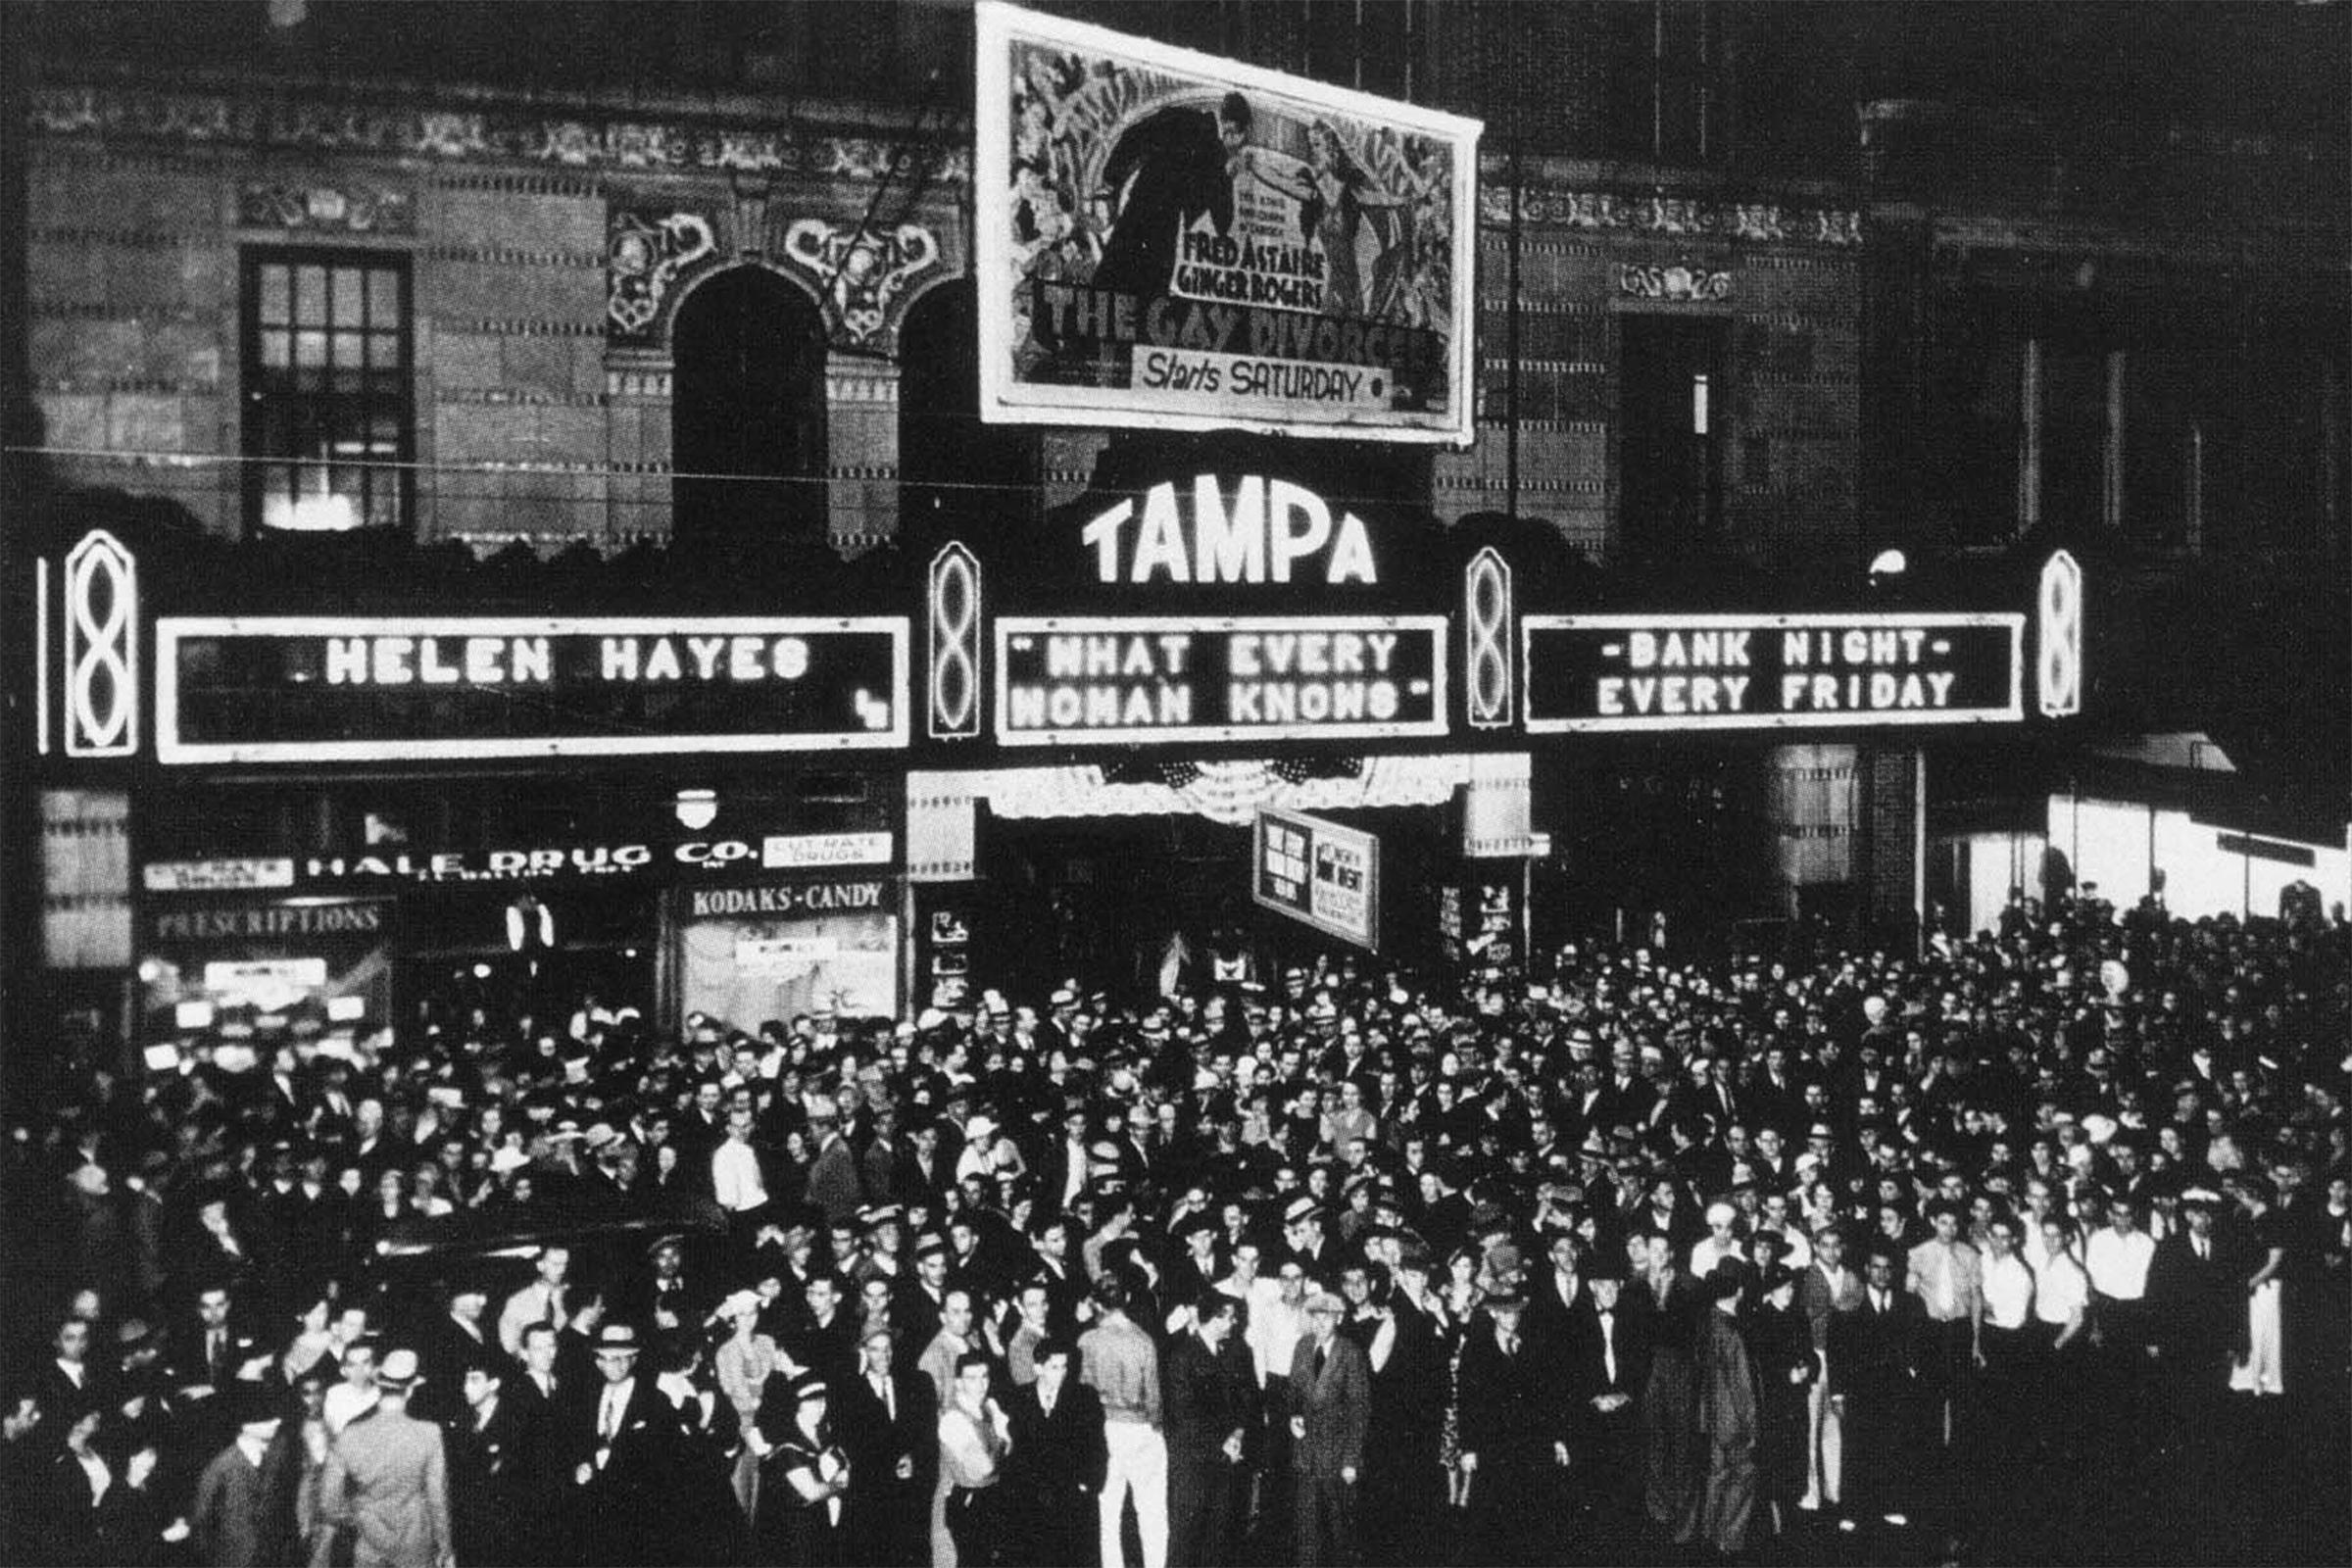 tampa theatre named worlds no 3 cinema wusf news